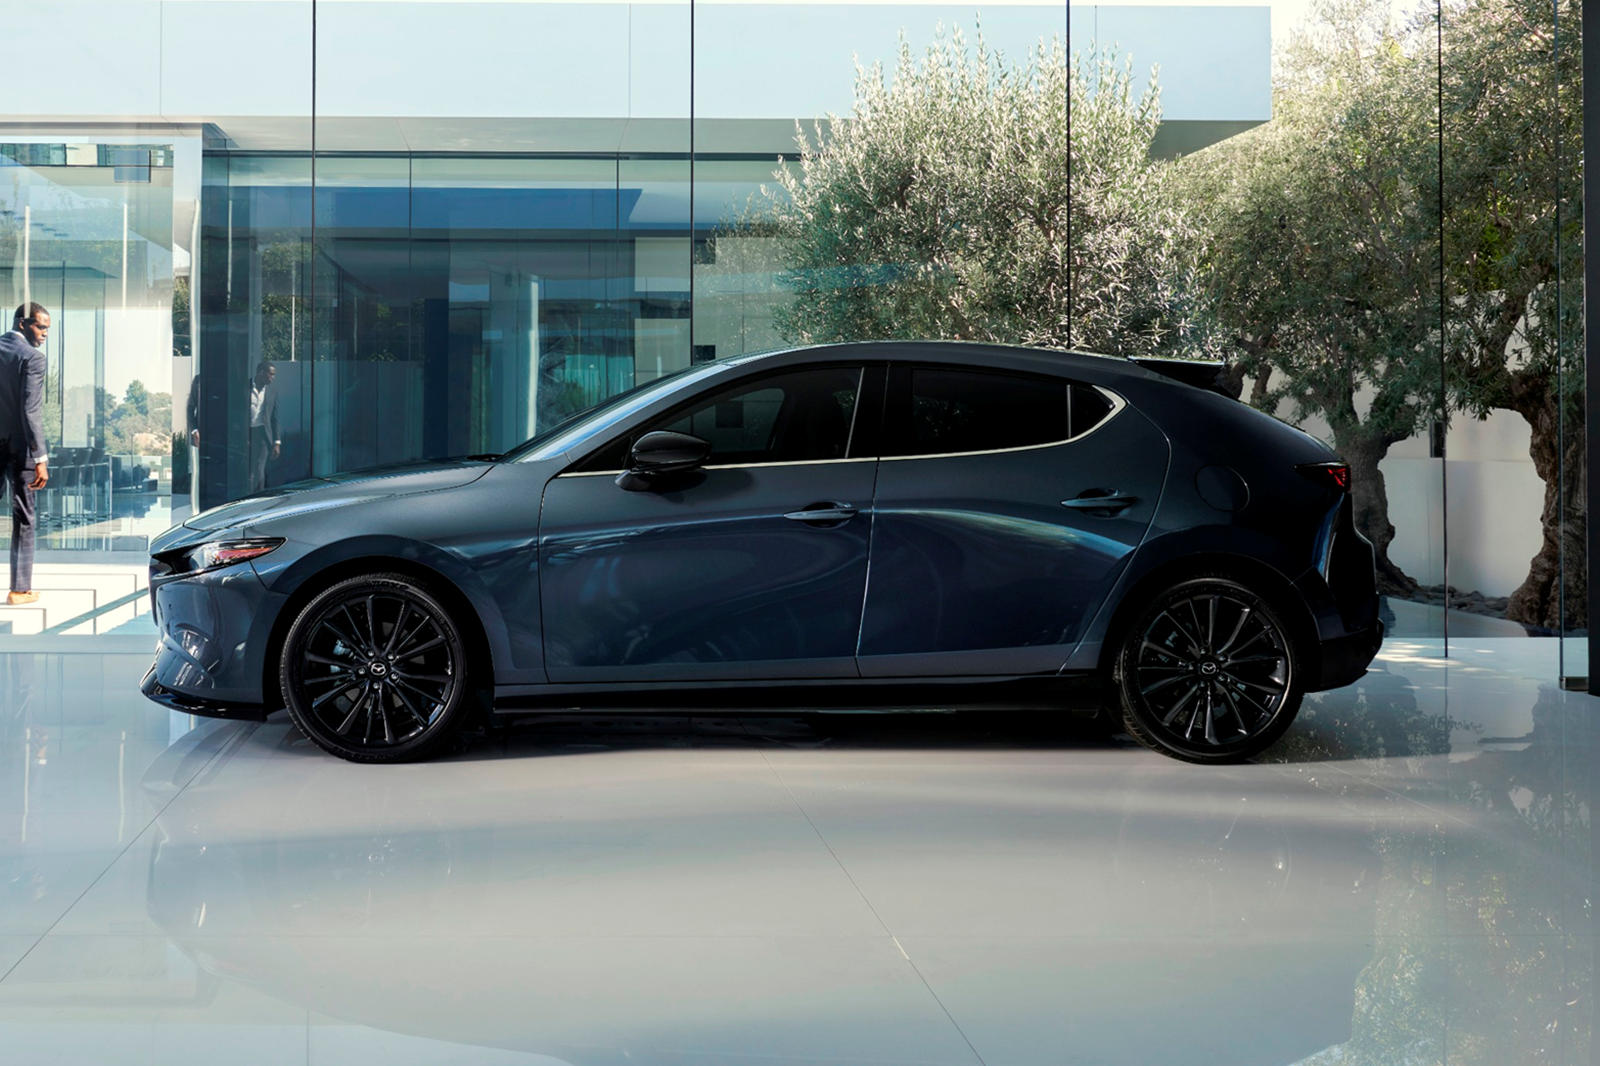 2021 Mazda3 2.5 Turbo Costs More Than A Golf GTI - CarBuzz